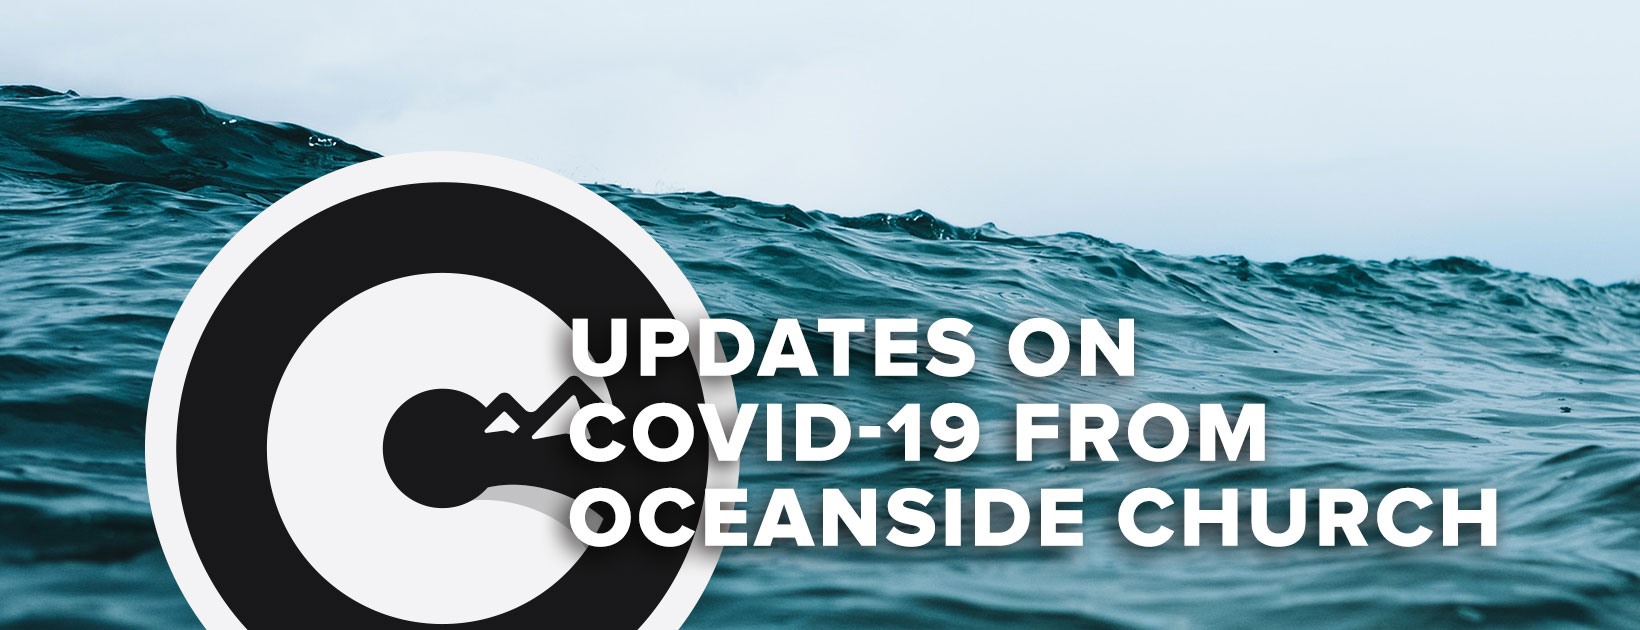 Covid-19 Updates from Oceanside